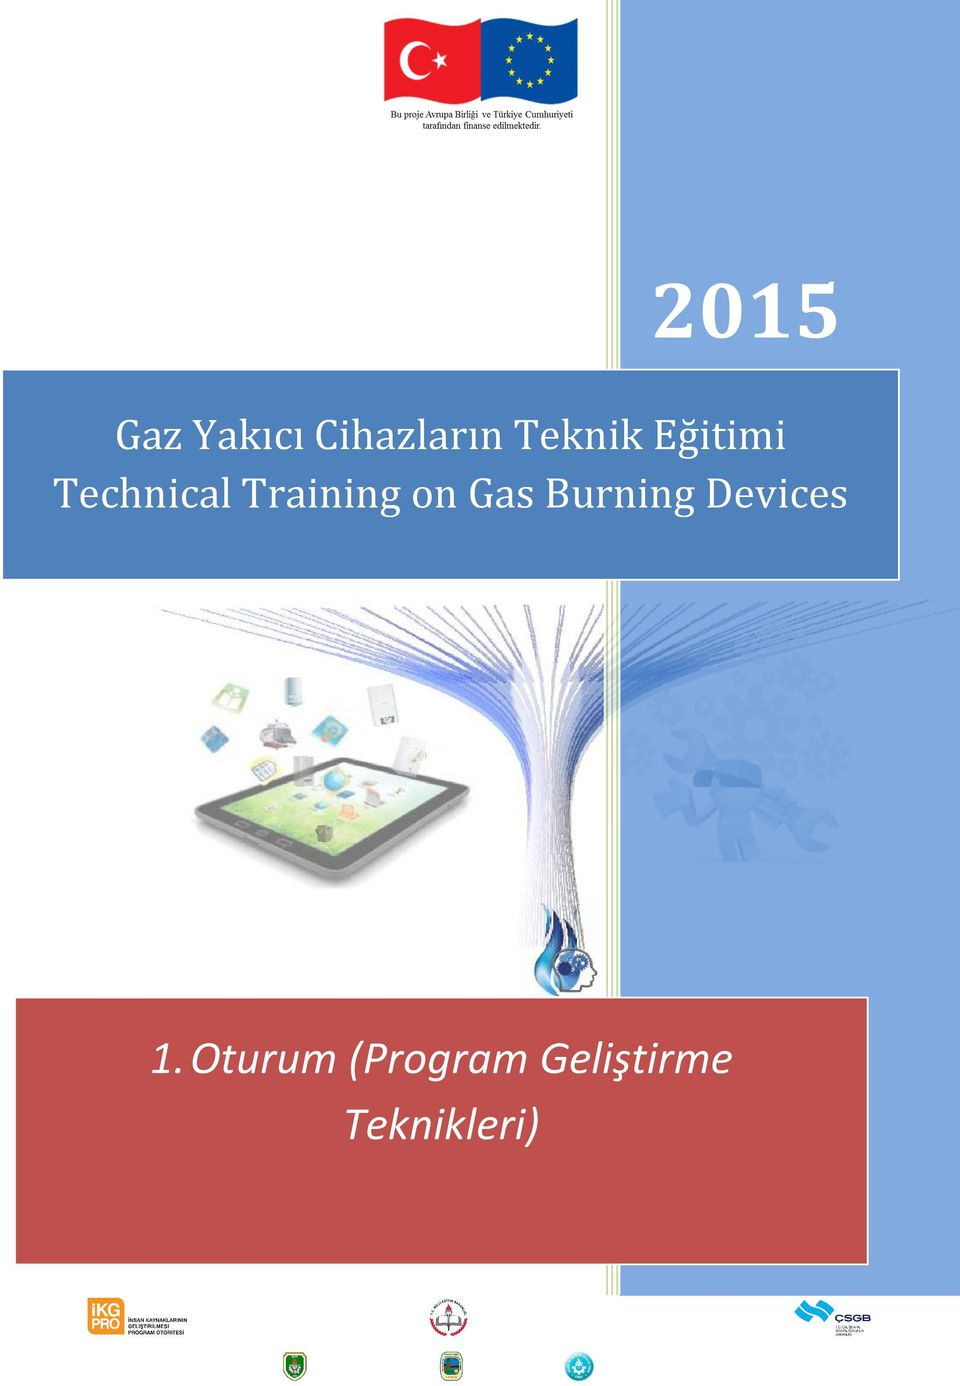 Training on Gas Burning Devices